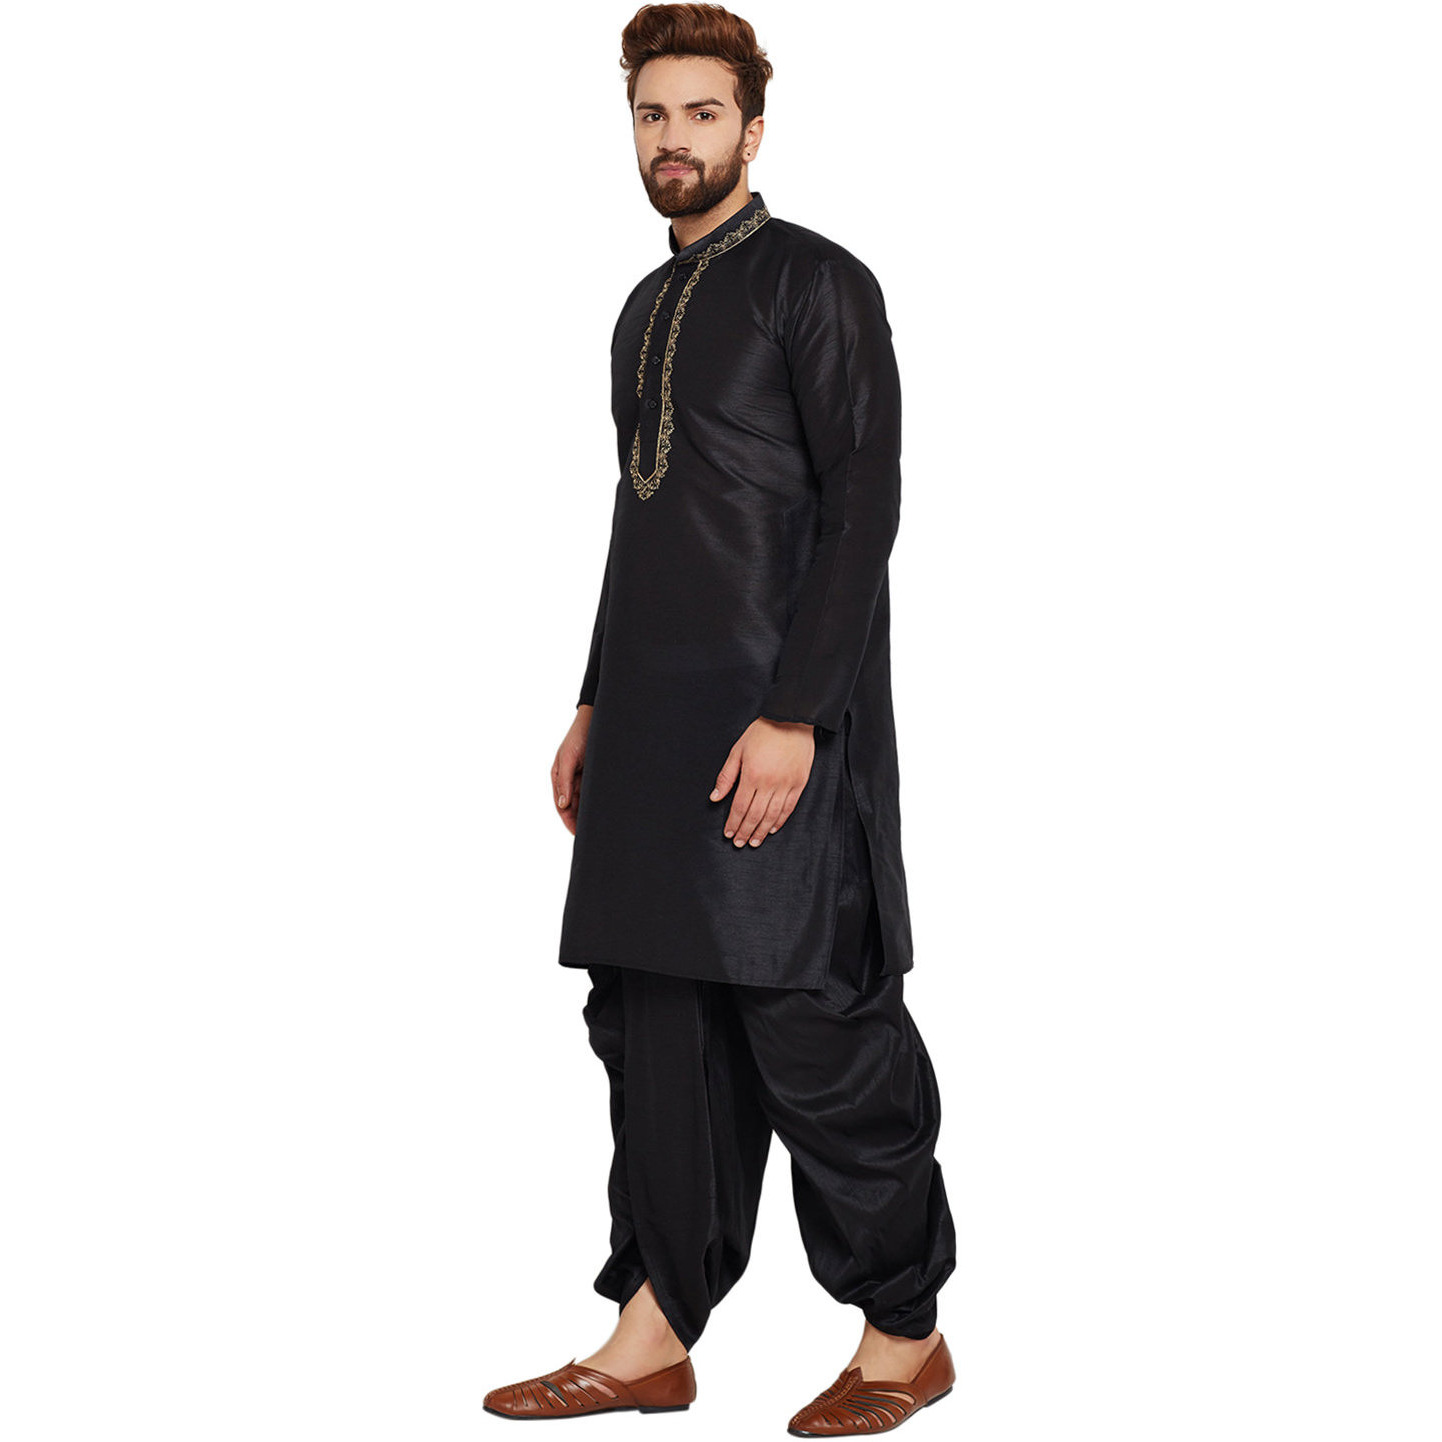 Sojanya (Since 1958)B Men's Traditional Ethnic Wear Dupion Silk Black and Gold Embroidery Dhoti Kurta Set Regular Fit